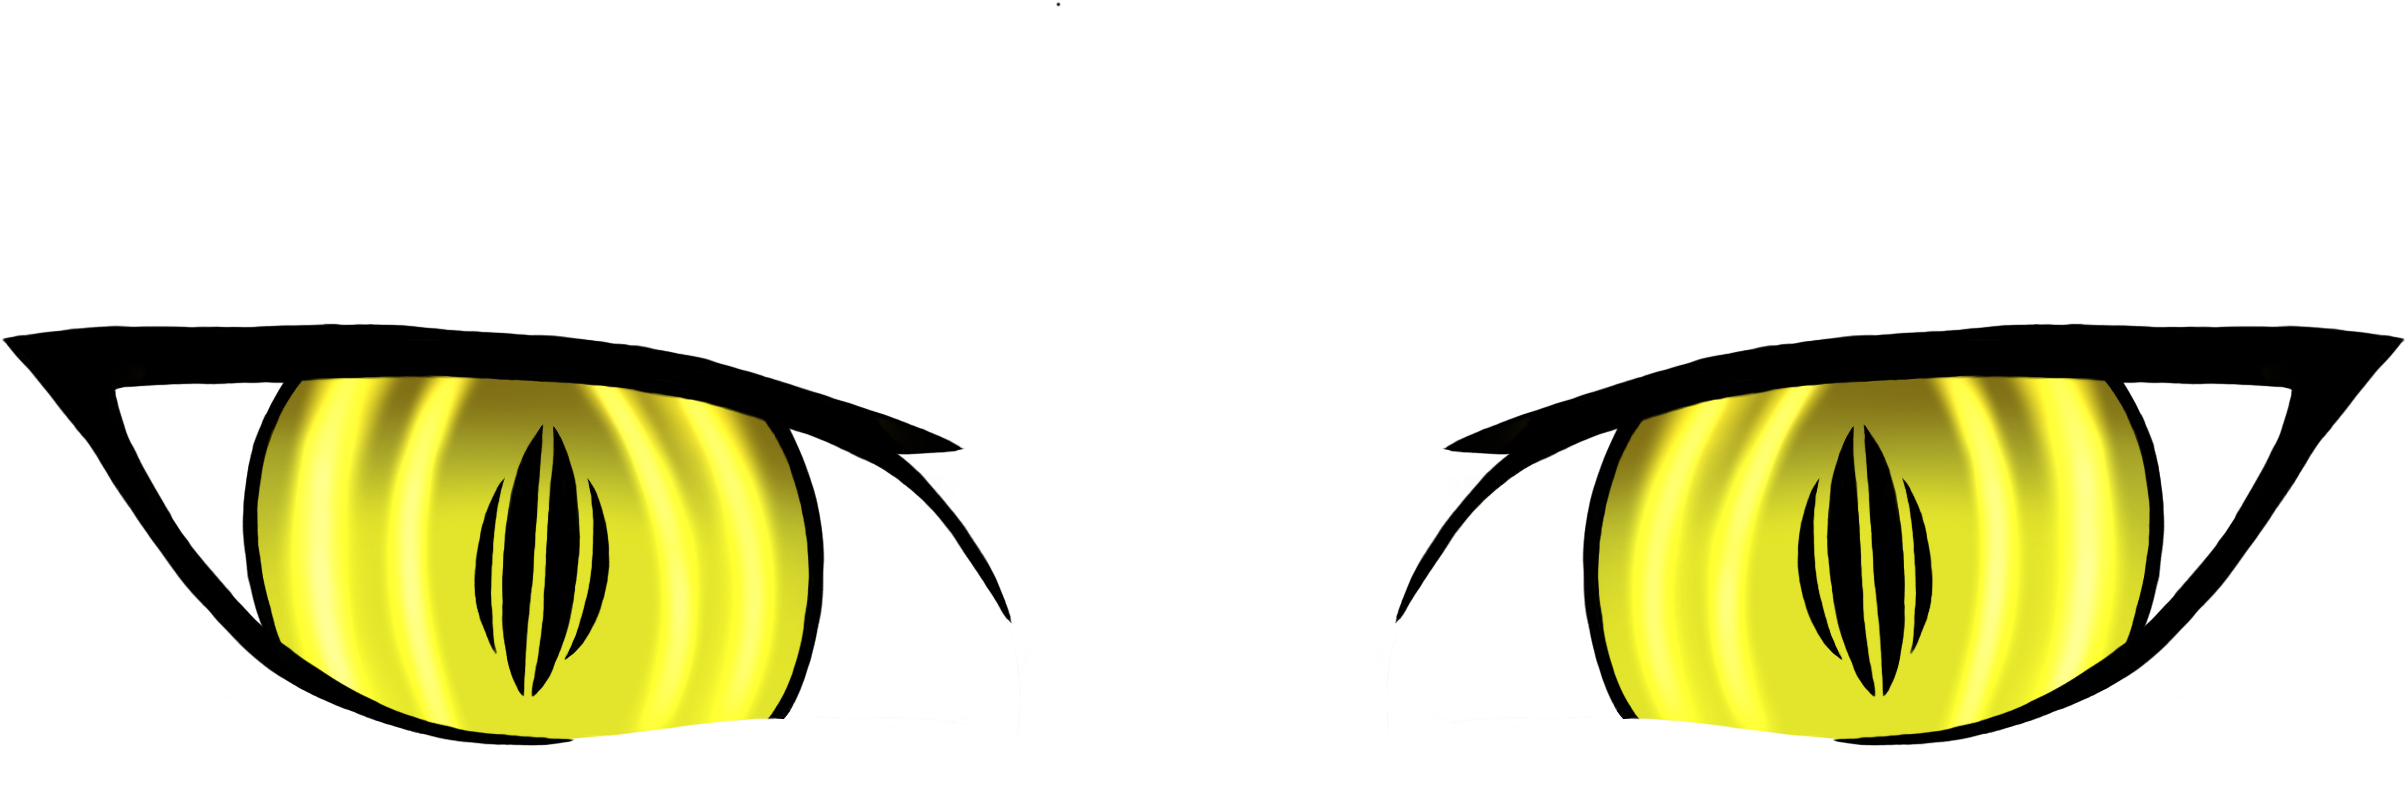 Demon Eyes Lucifer Eye Devil Png Image High Quality.